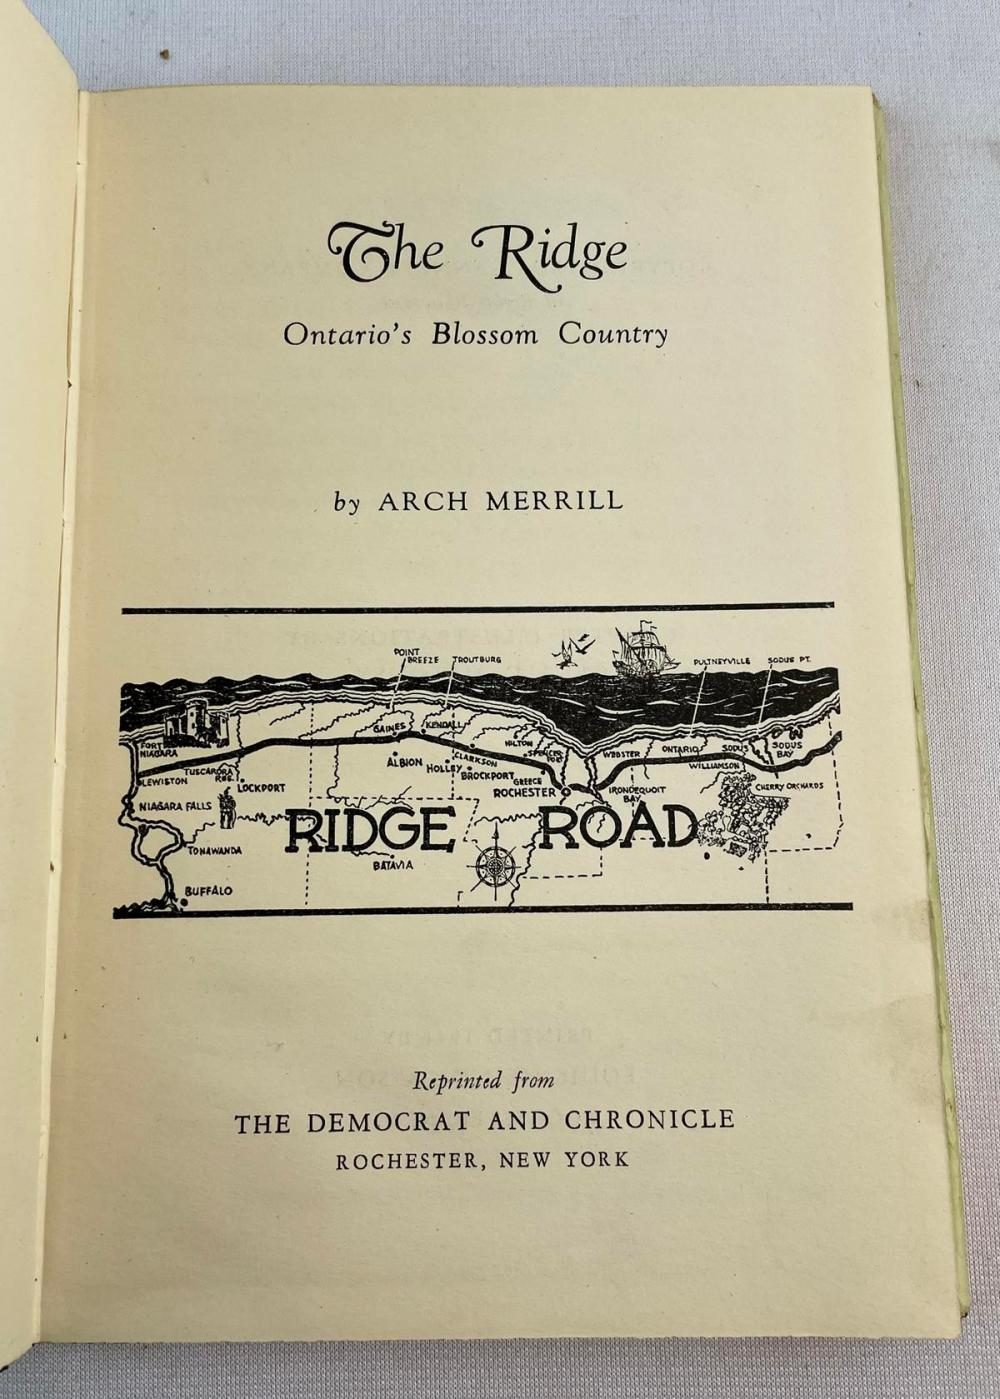 1944 The Ridge: Ontario's Blossom Country by Arch Merrill w/ Dust Jacket Illustrated FIRST EDITION